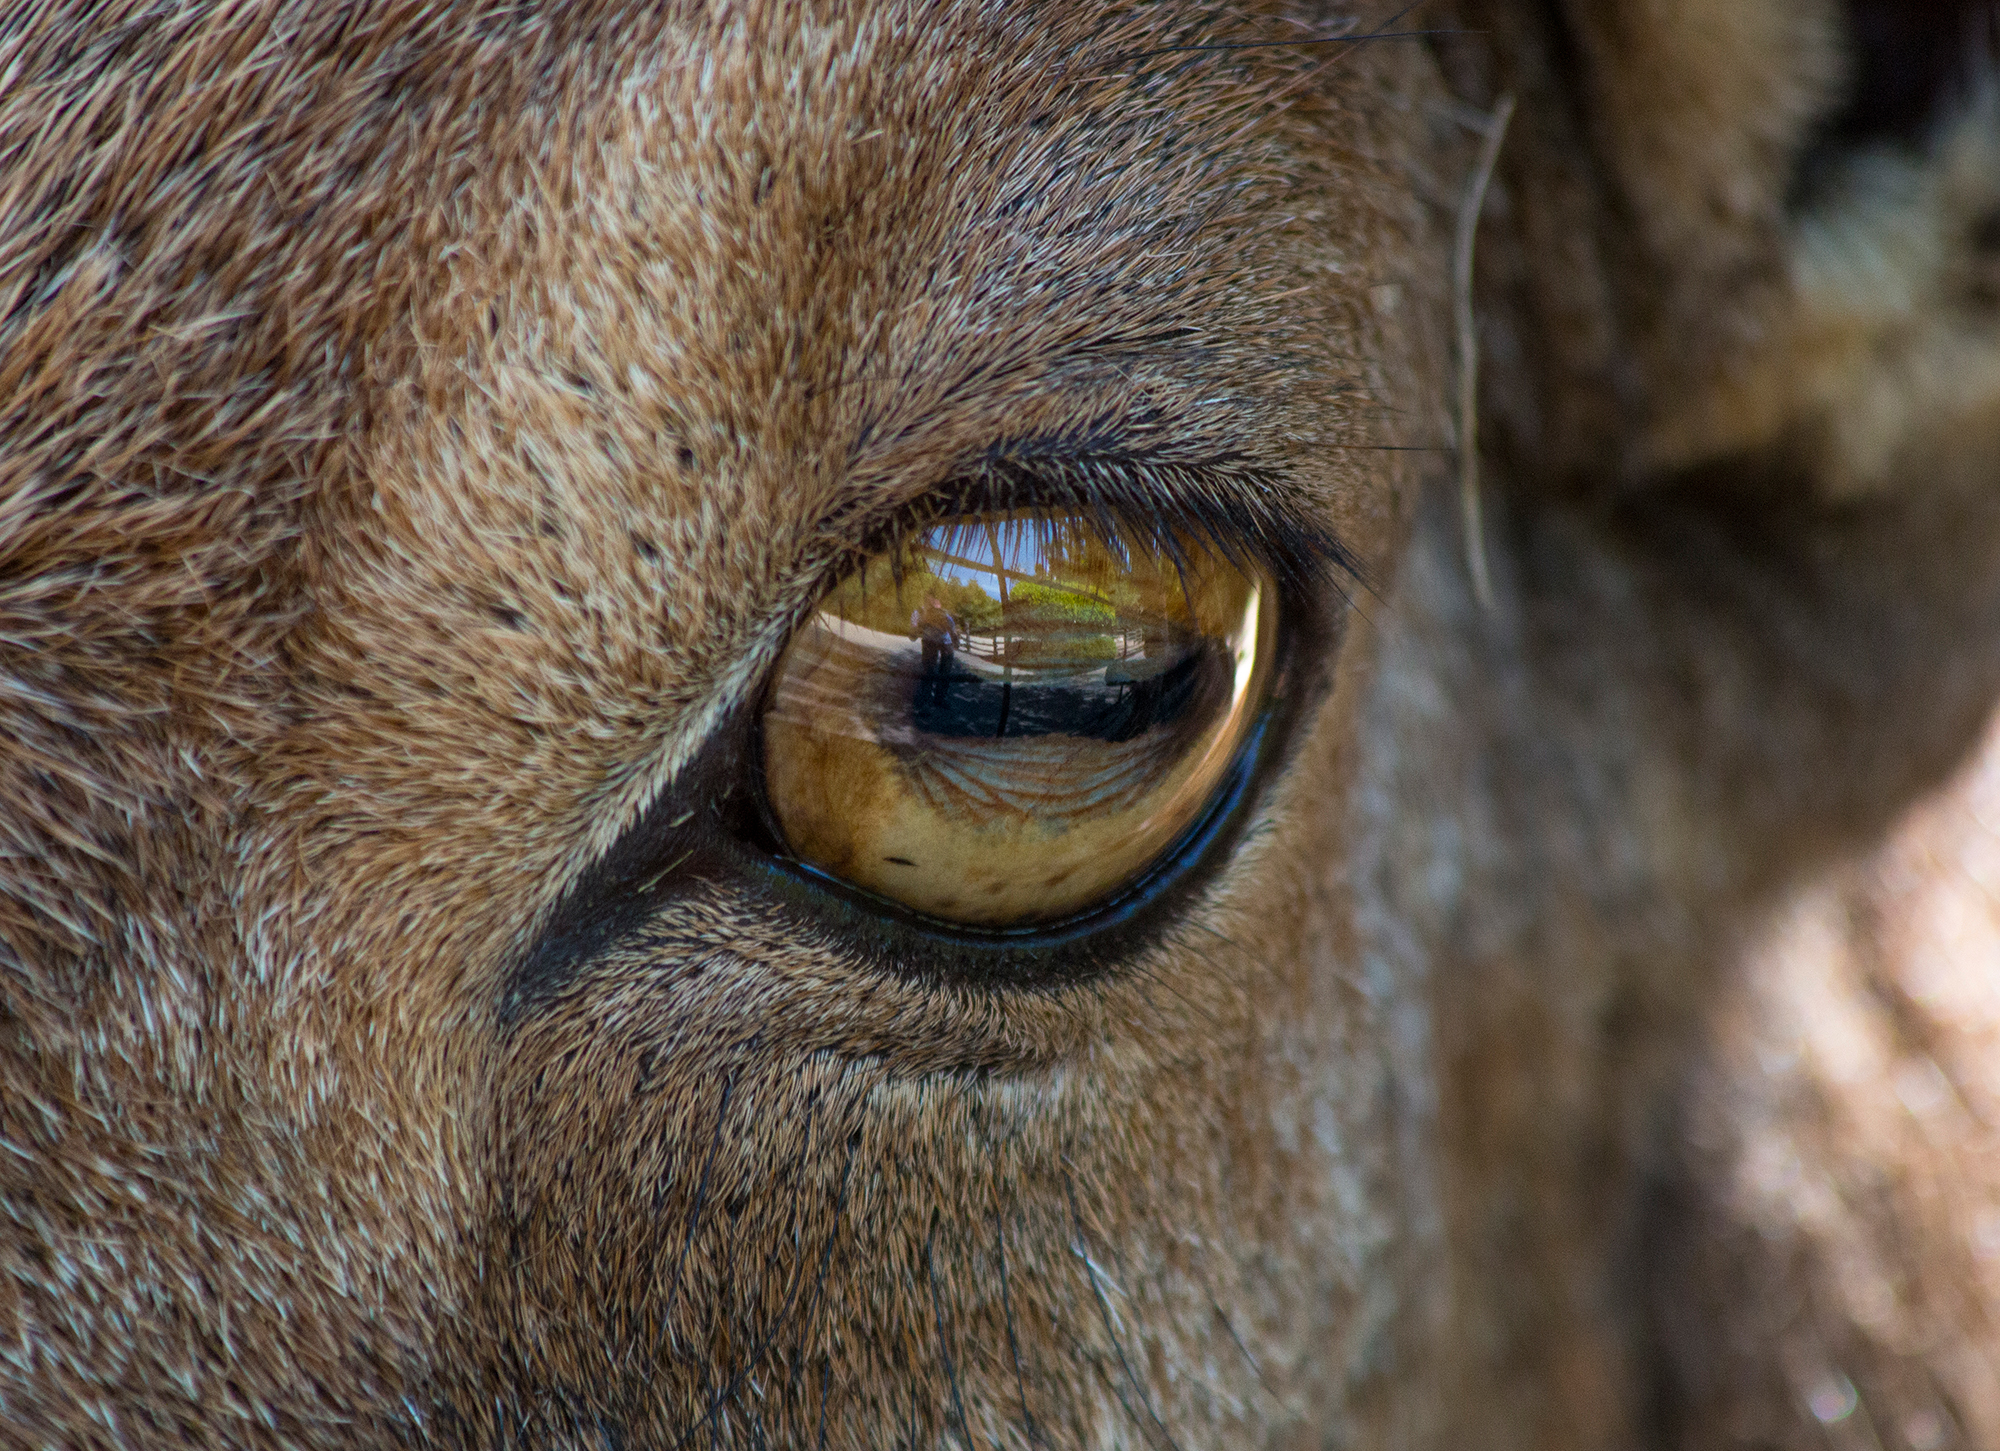 Barbary sheep, like many other grazing prey animals, have horizontal pupils and eyes on the side of their heads.